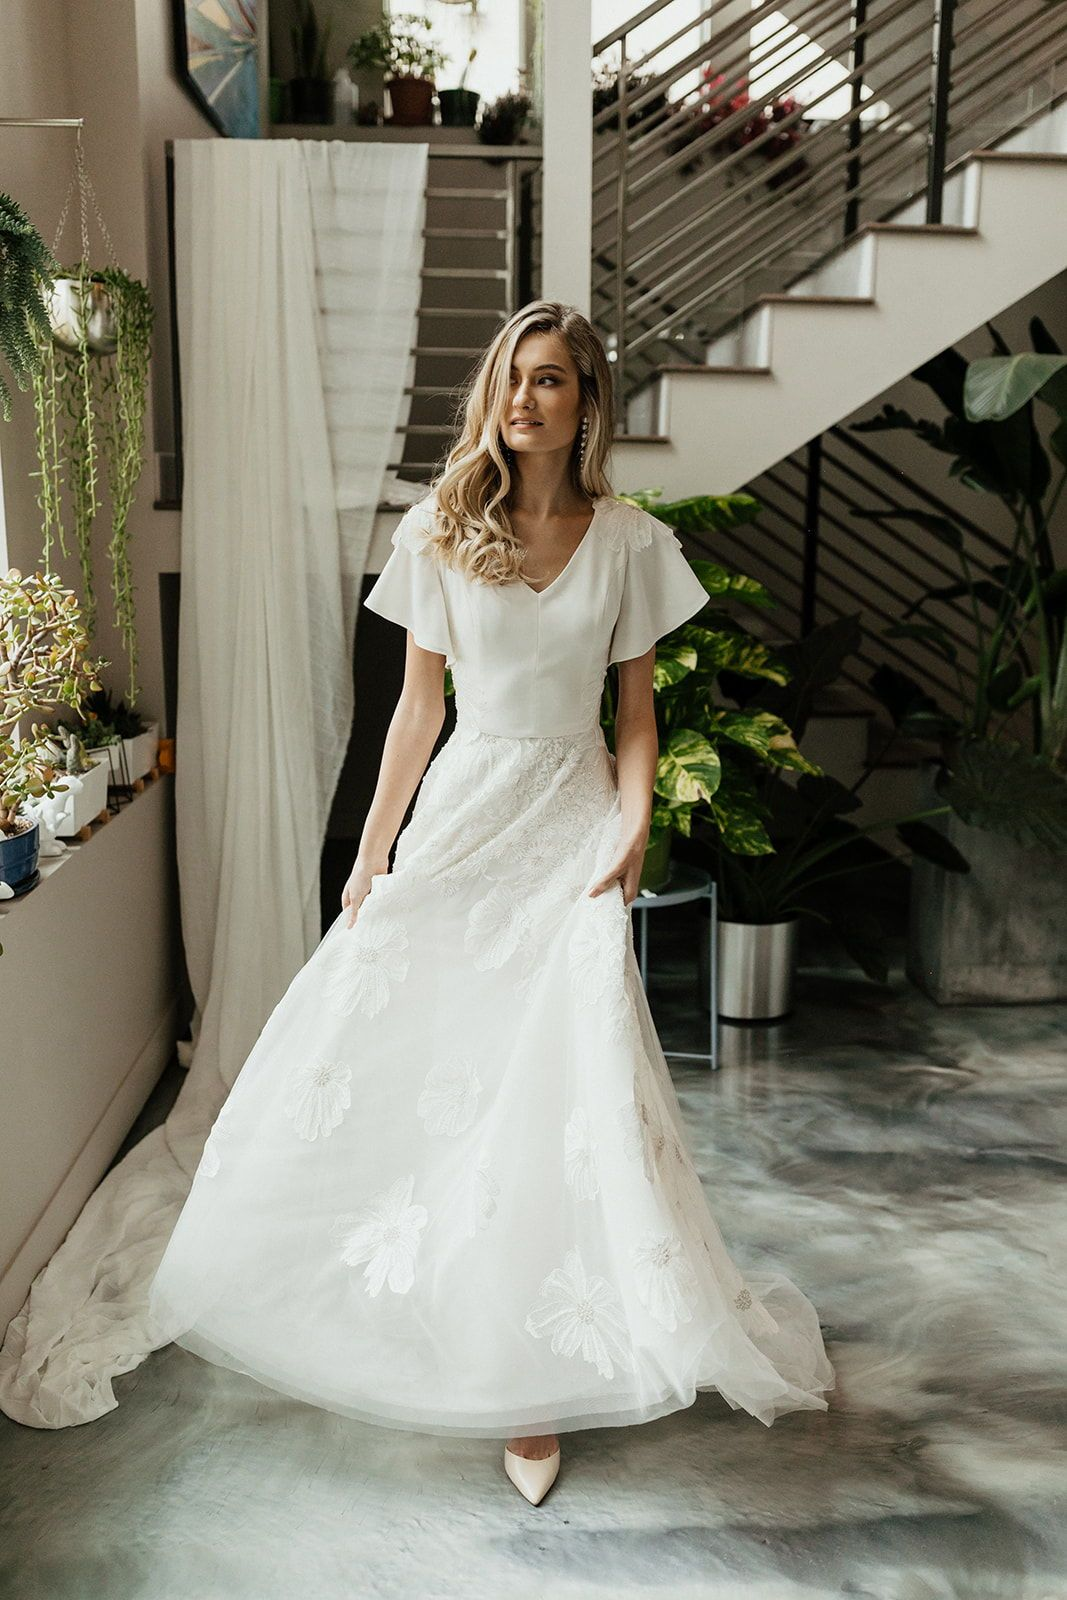 Modest Wedding Dress With Flutter Sleeves In 2020 Modest Wedding Dresses Lds Modest Wedding Dresses Wedding Dresses